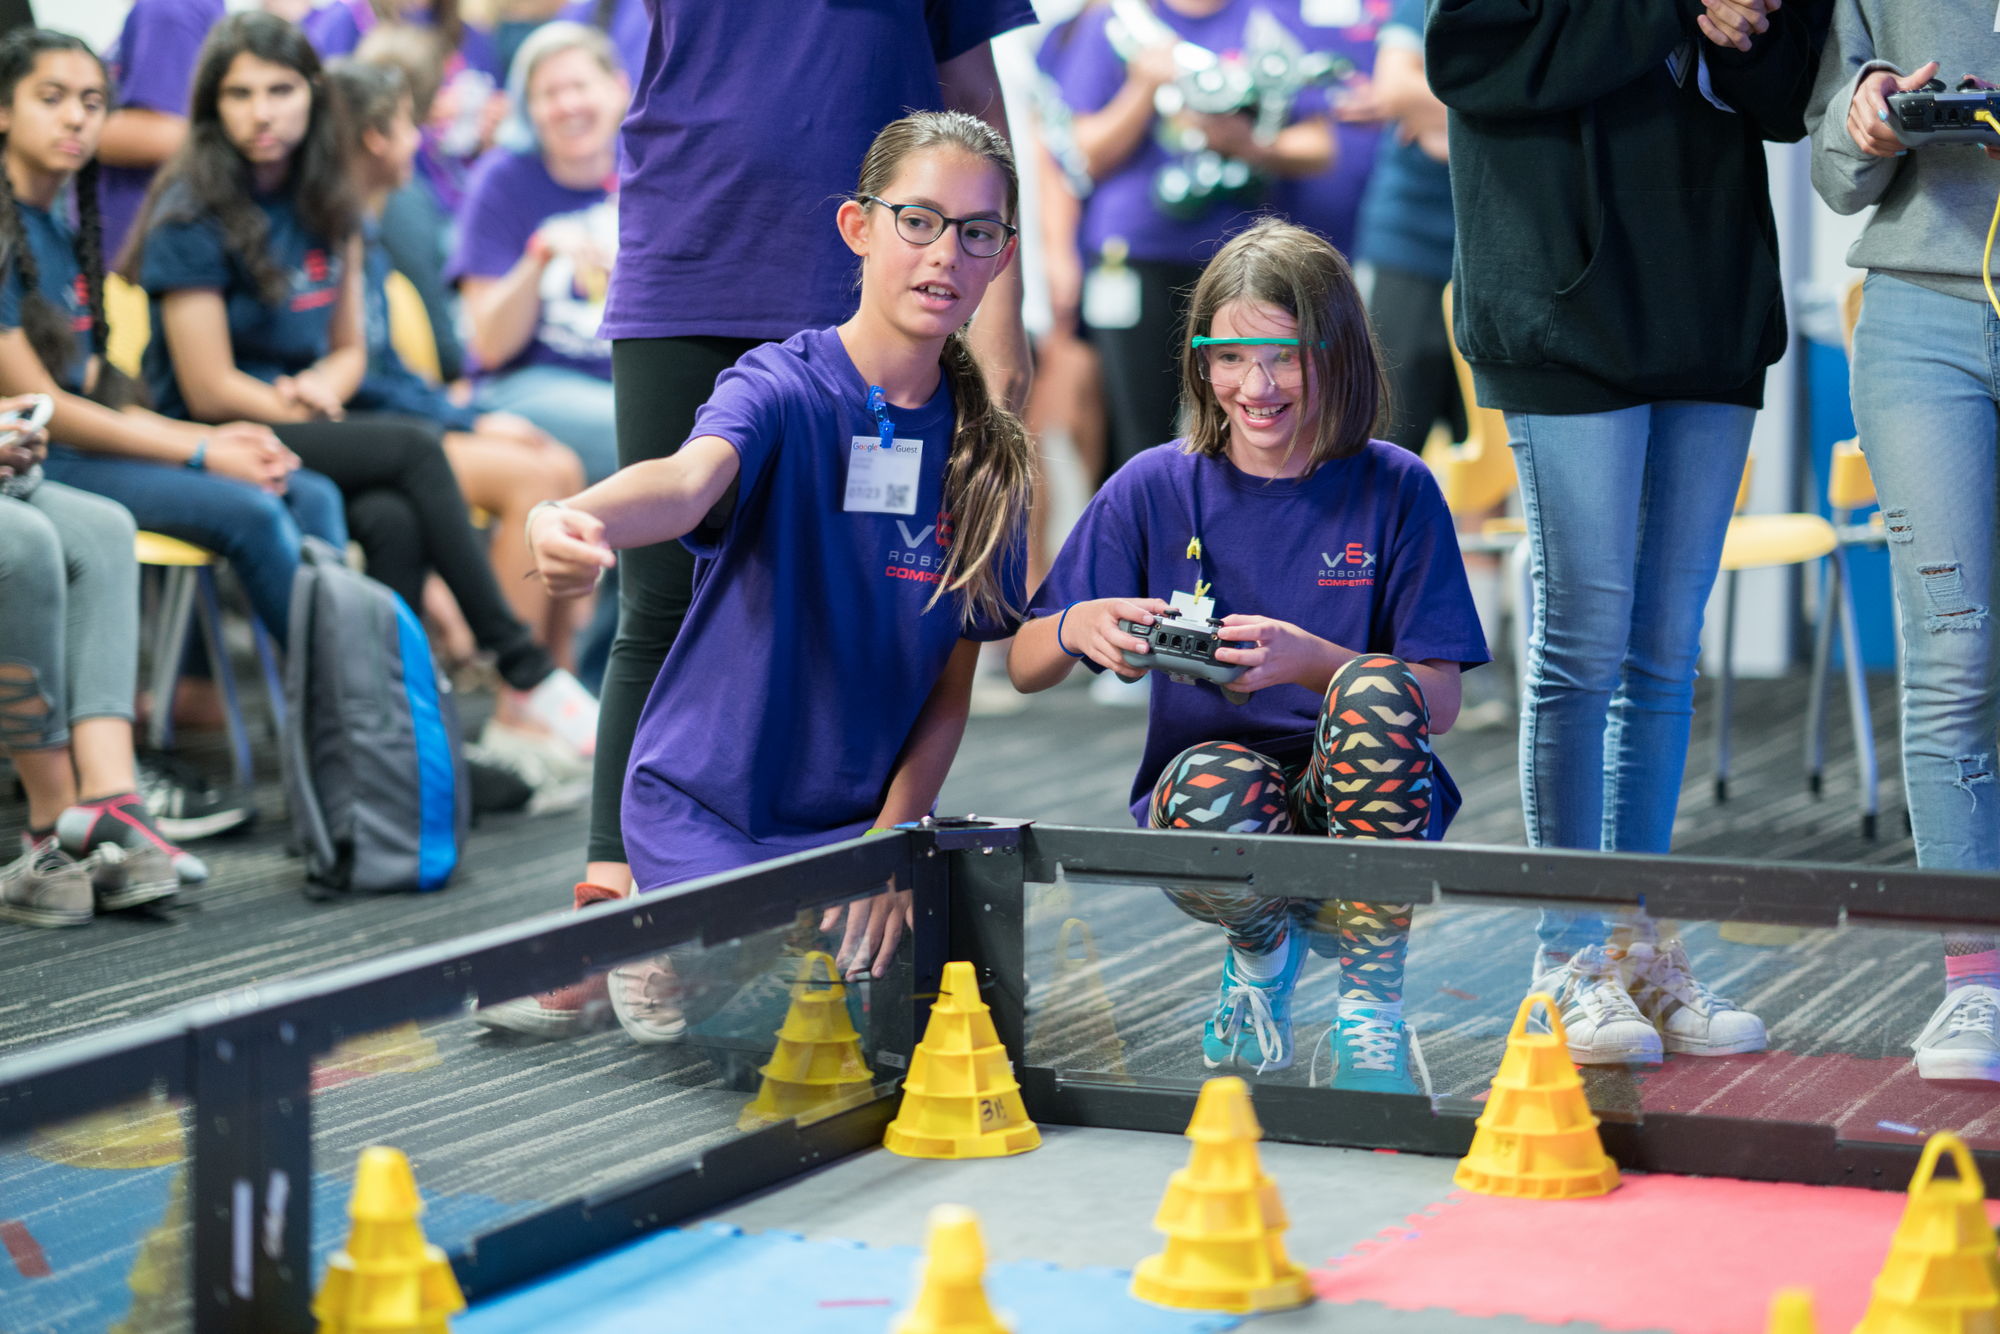 Leveling the STEM playing field for girls, one robot at a time